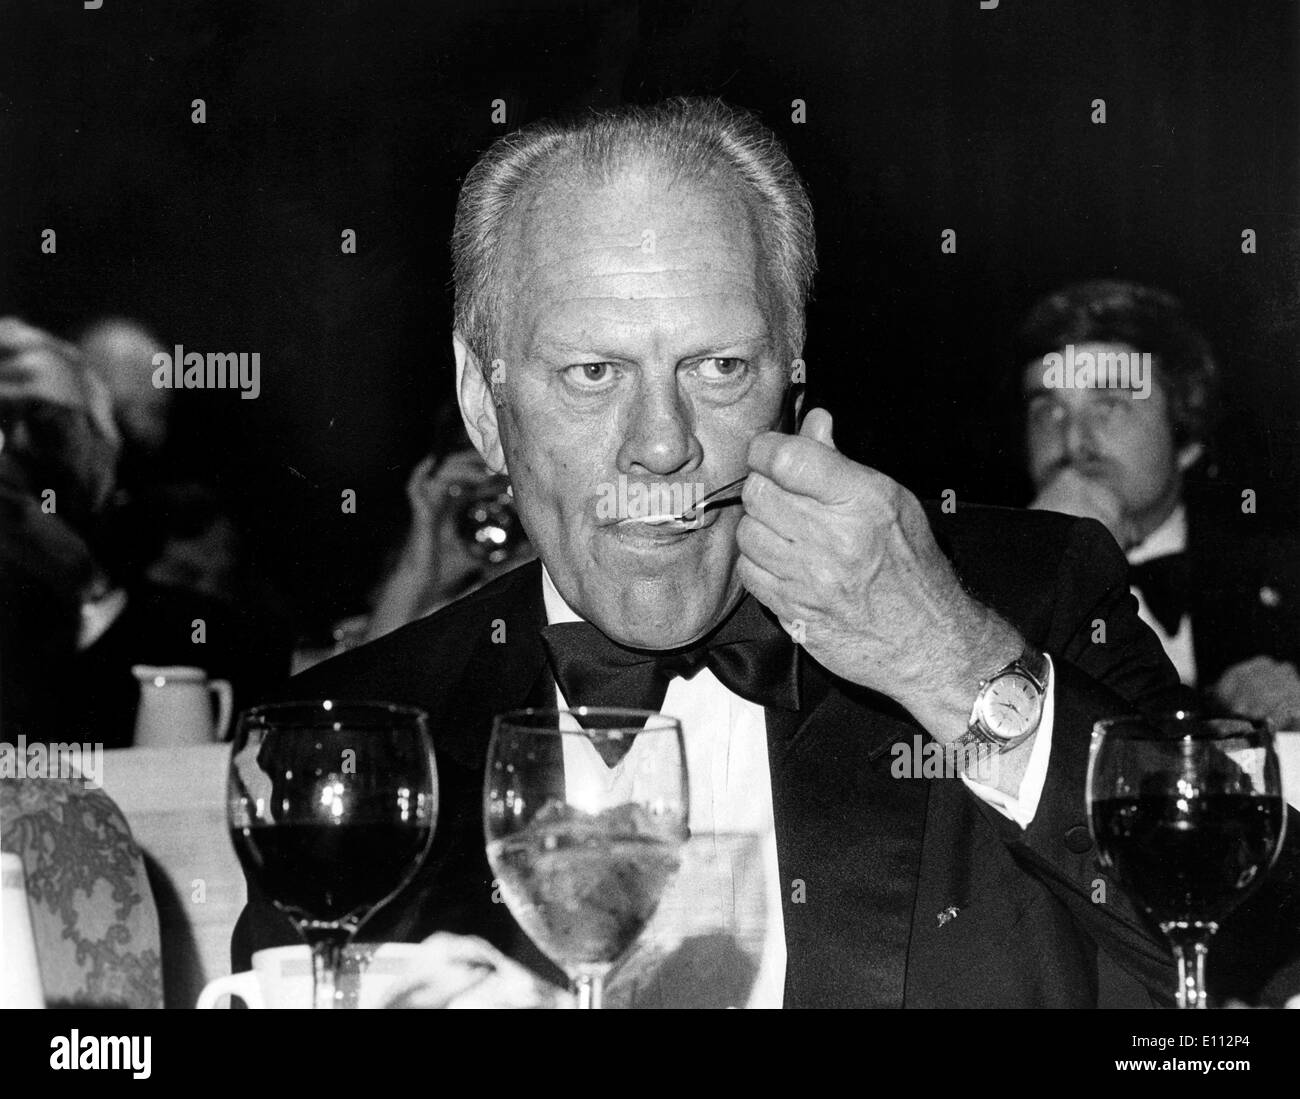 President Ford attends black tie event - Stock Image